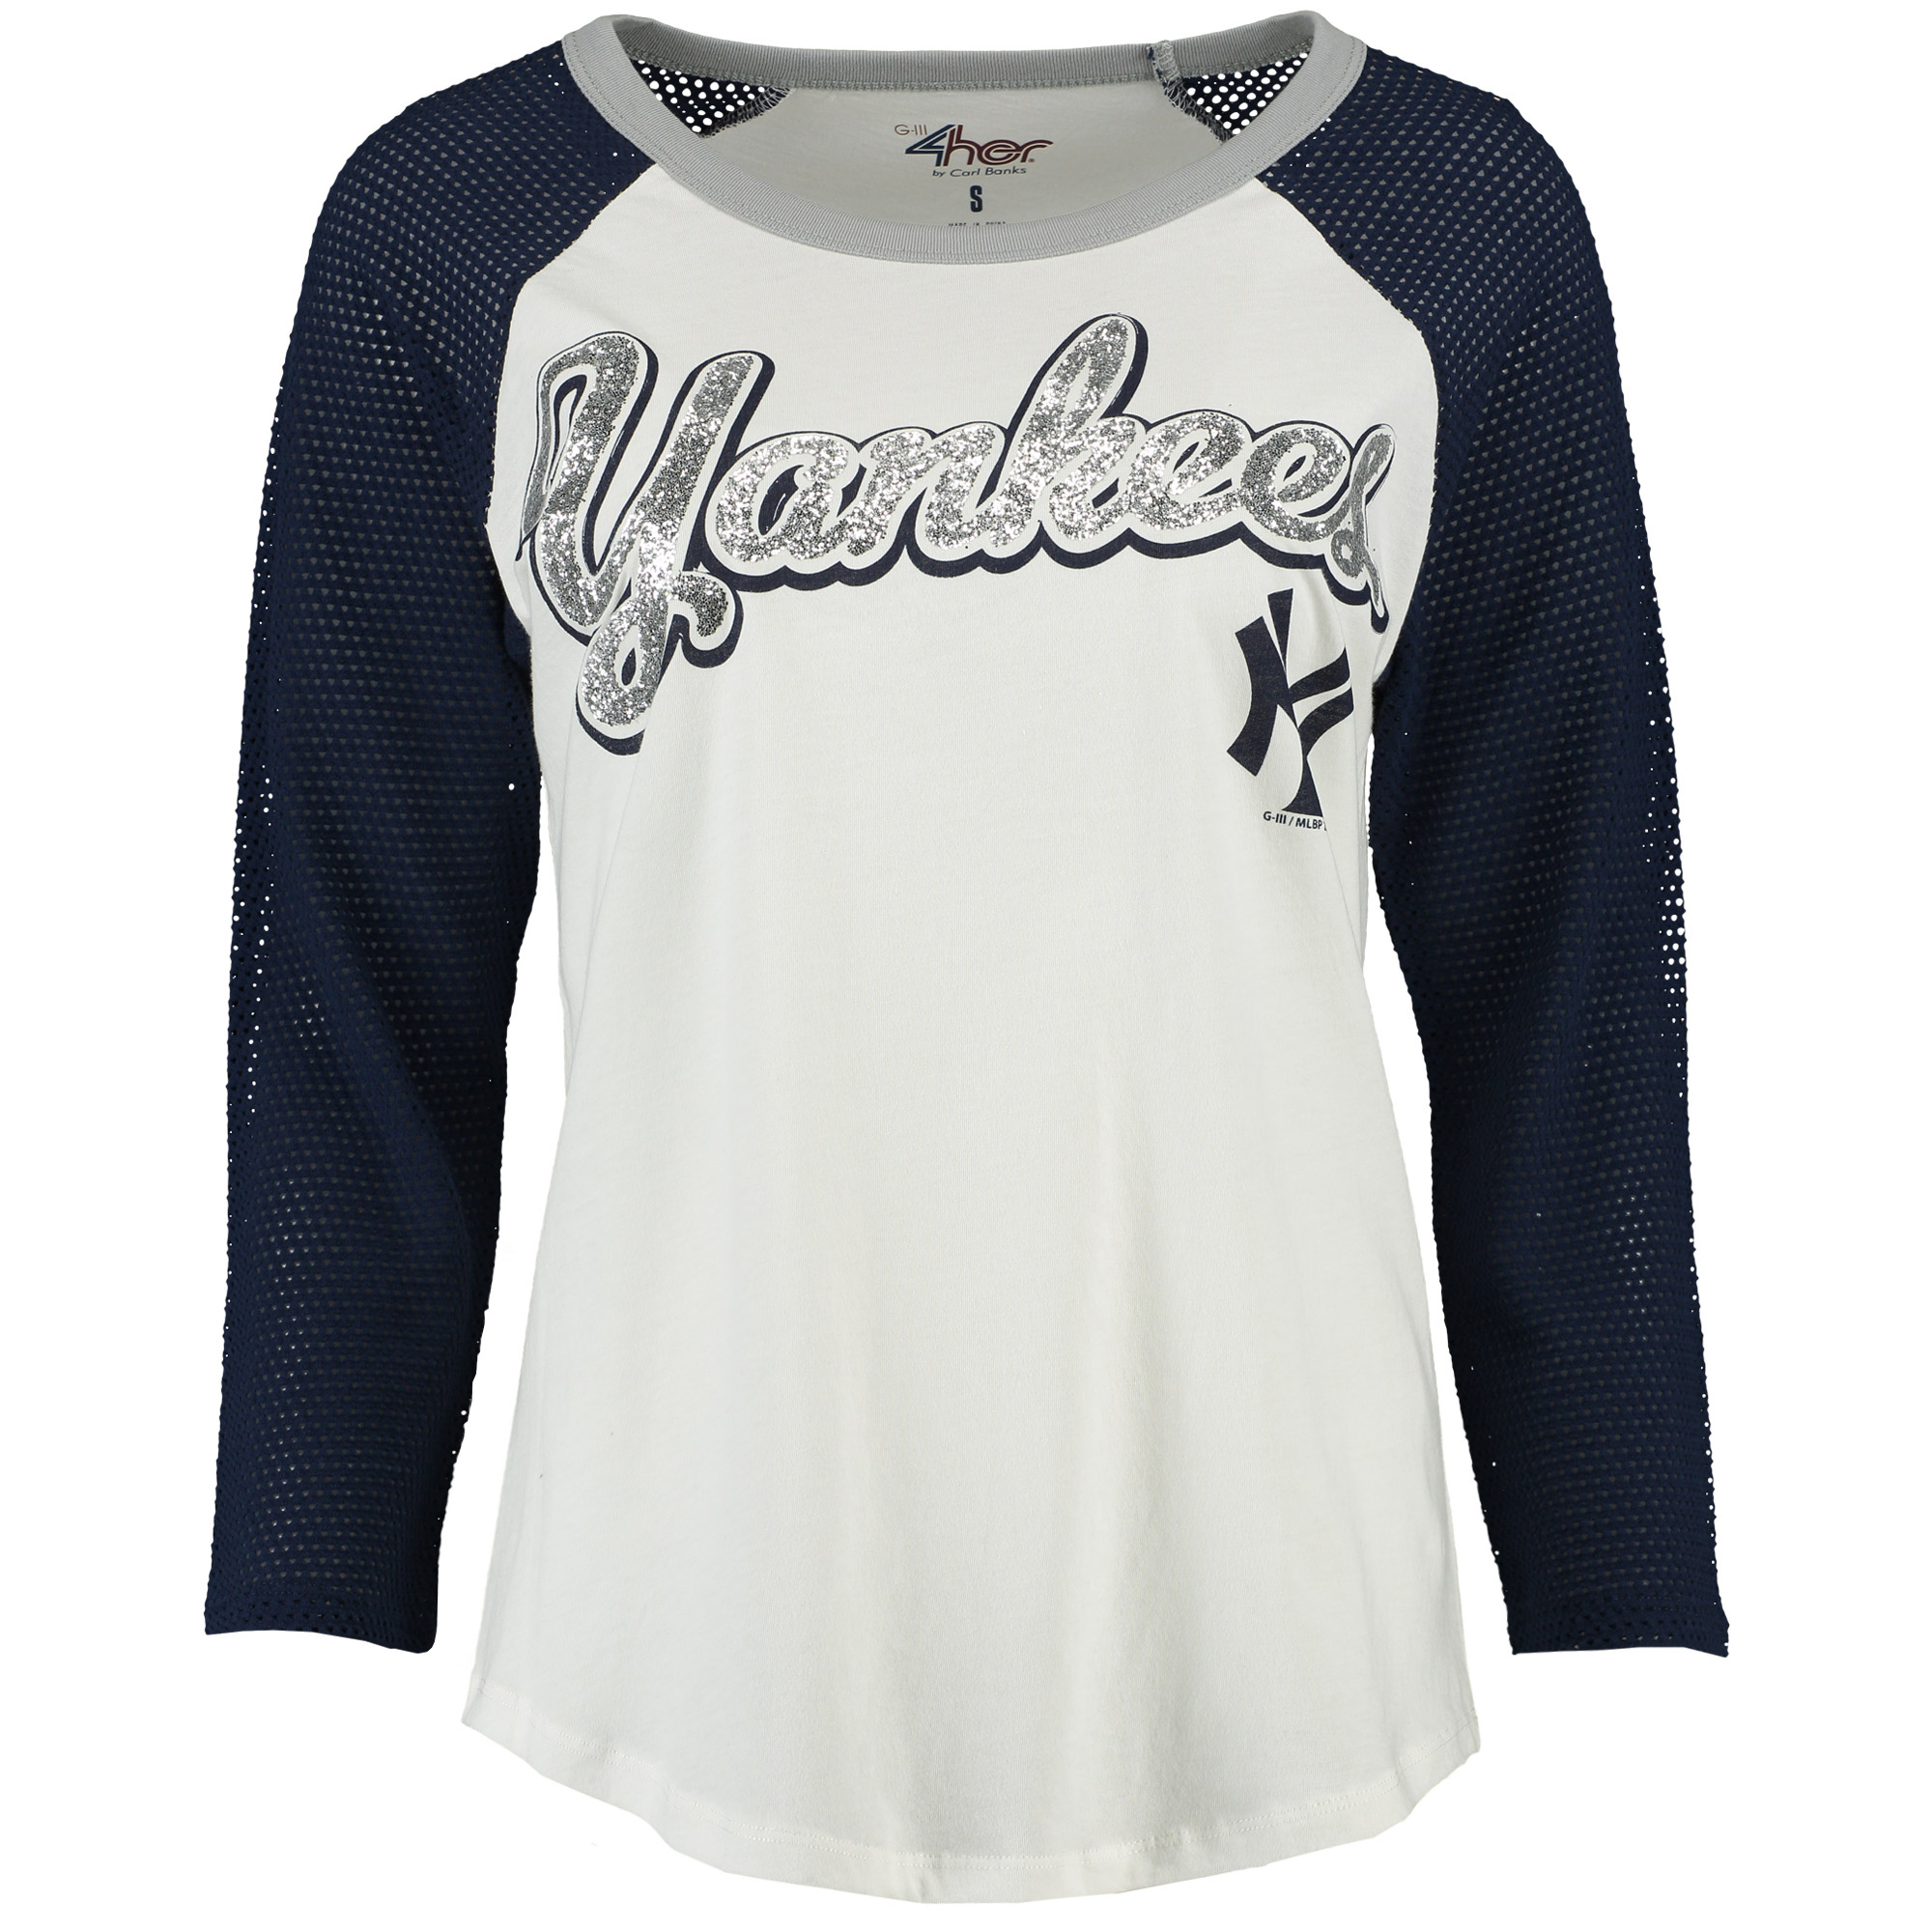 New York Yankees G-III 4Her by Carl Banks Women's Backstop Raglan Long Sleeve Shirt - White